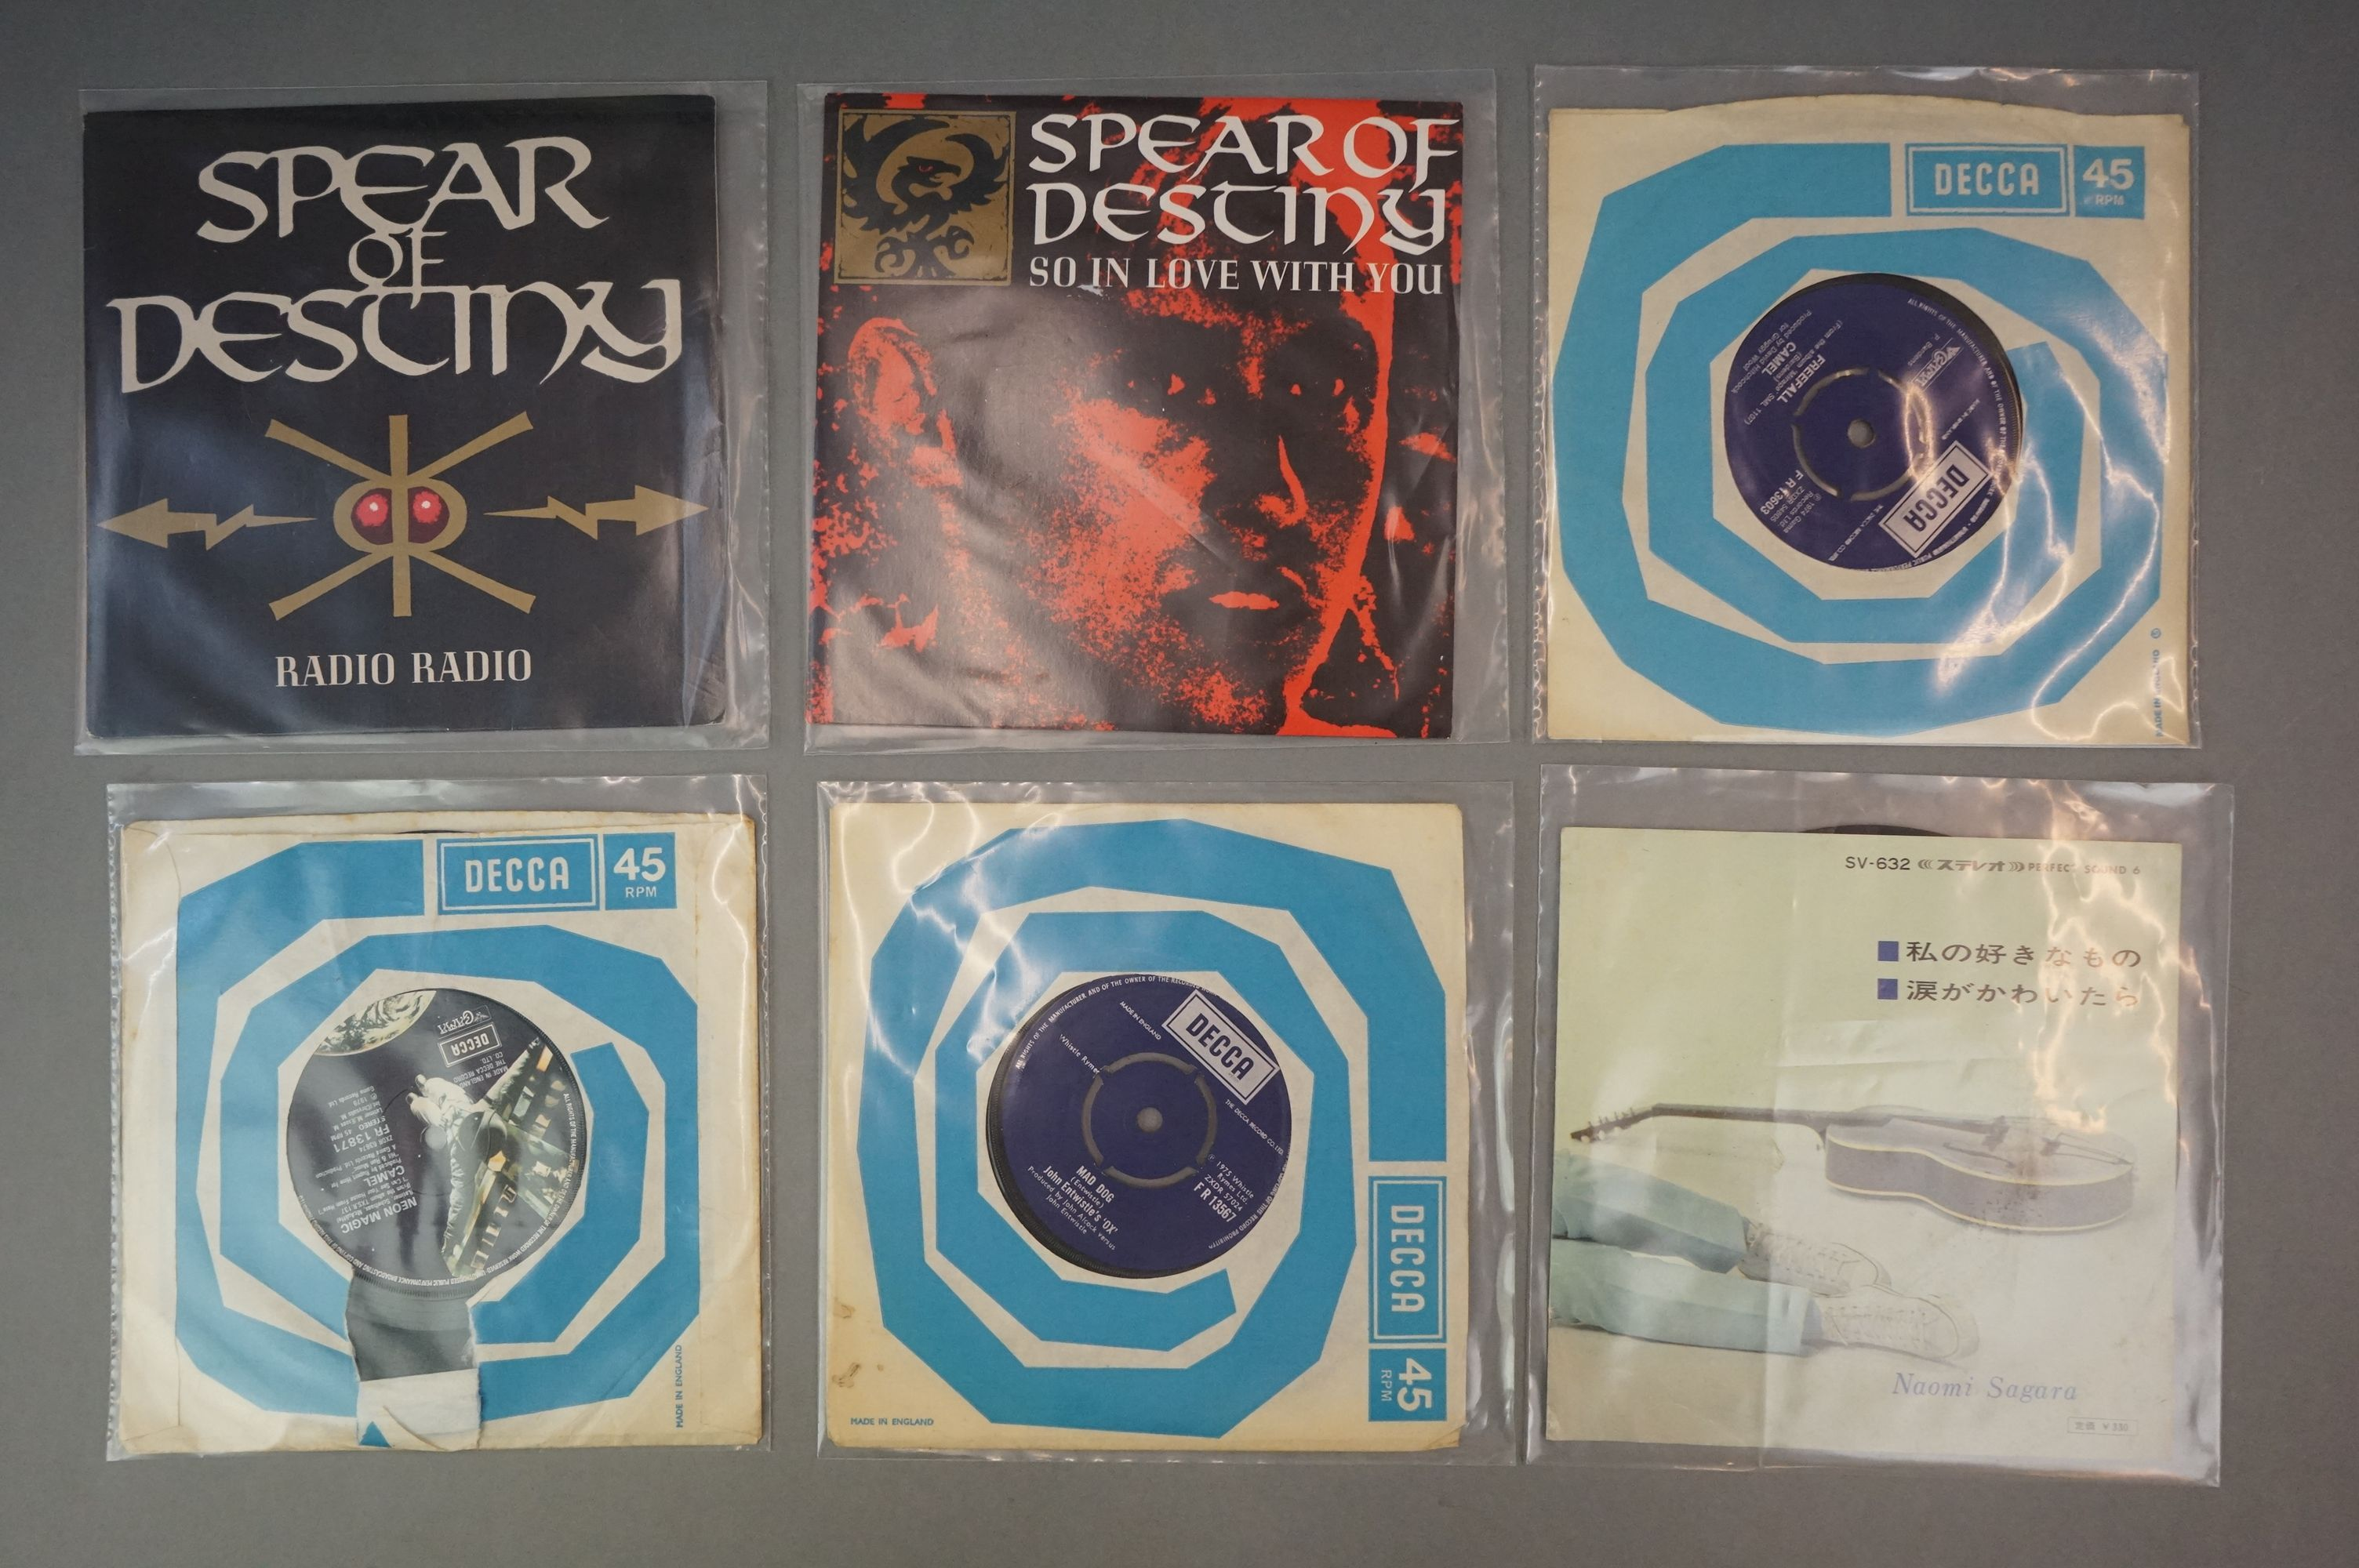 """Vinyl - Collection of approx 20 7"""" singles spanning genres and decades including 90's examples - Image 3 of 6"""